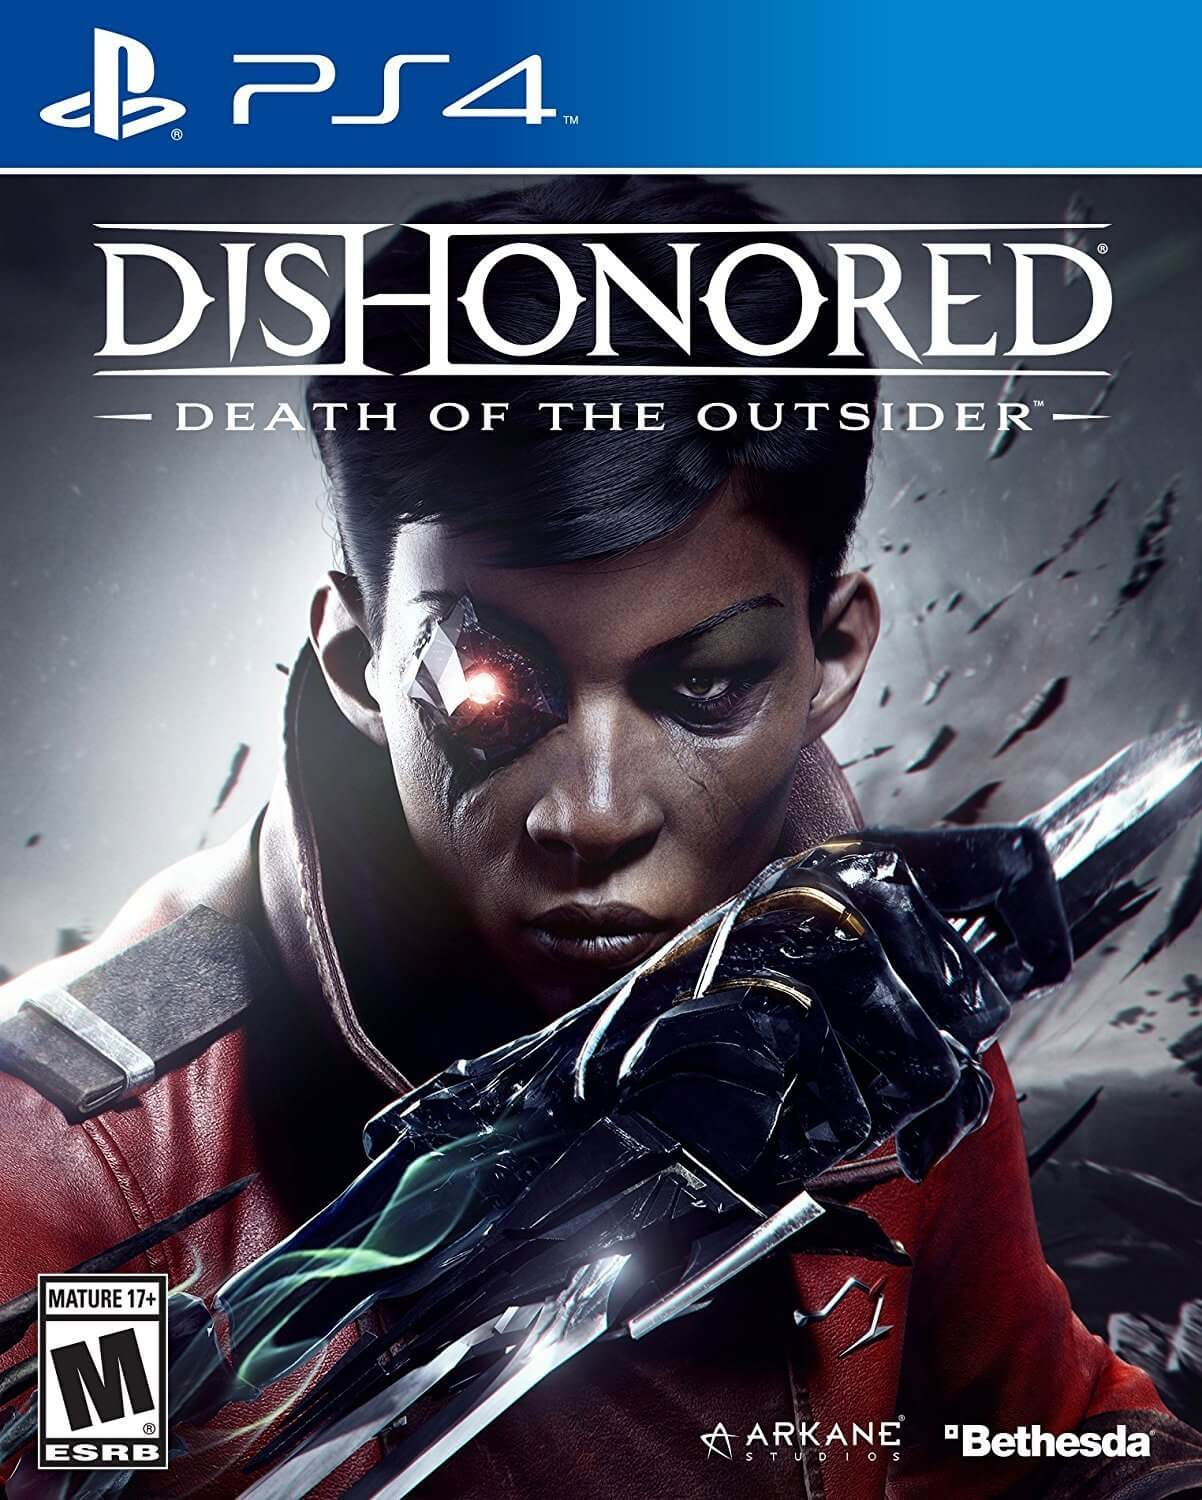 Dishonored Death of the Outsider cover 1 - Dishonored: Death of the Outsider Launch Trailer Leaves Bloody Death in its Wake